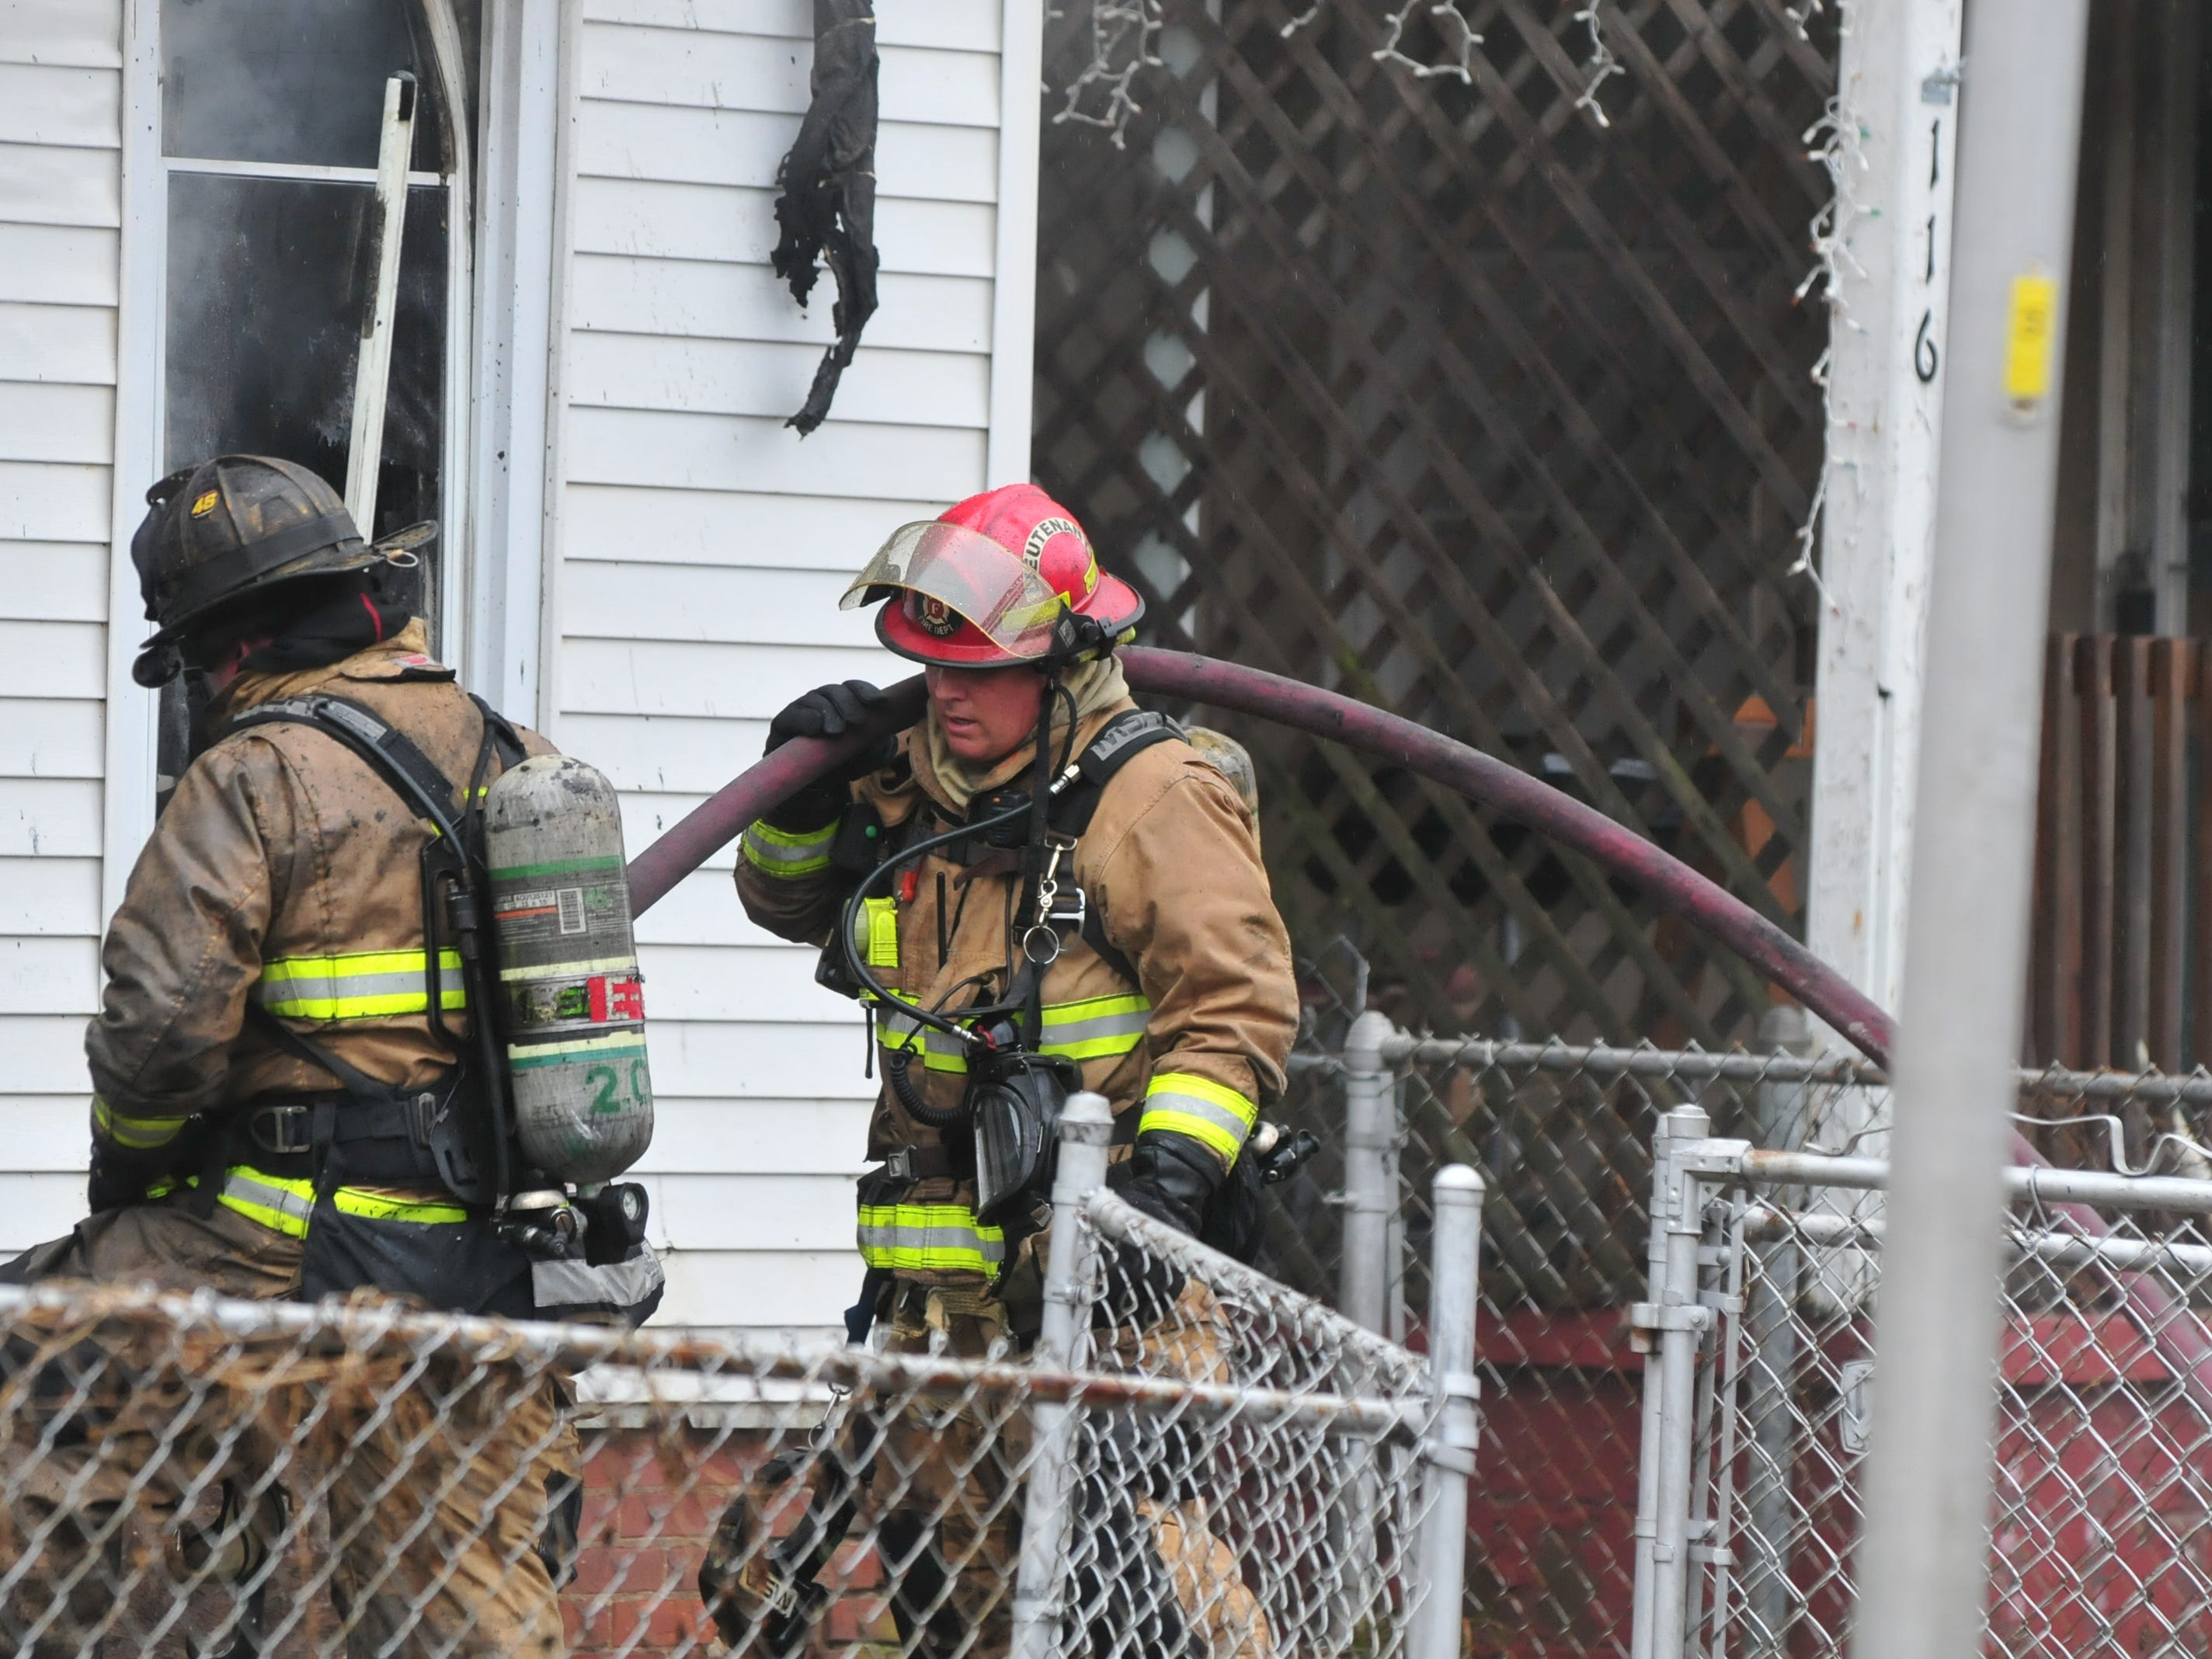 Richmond Fire Department personnel was called to a house fire at 11:09 a.m. Wednesday at 112 N. 18th St.